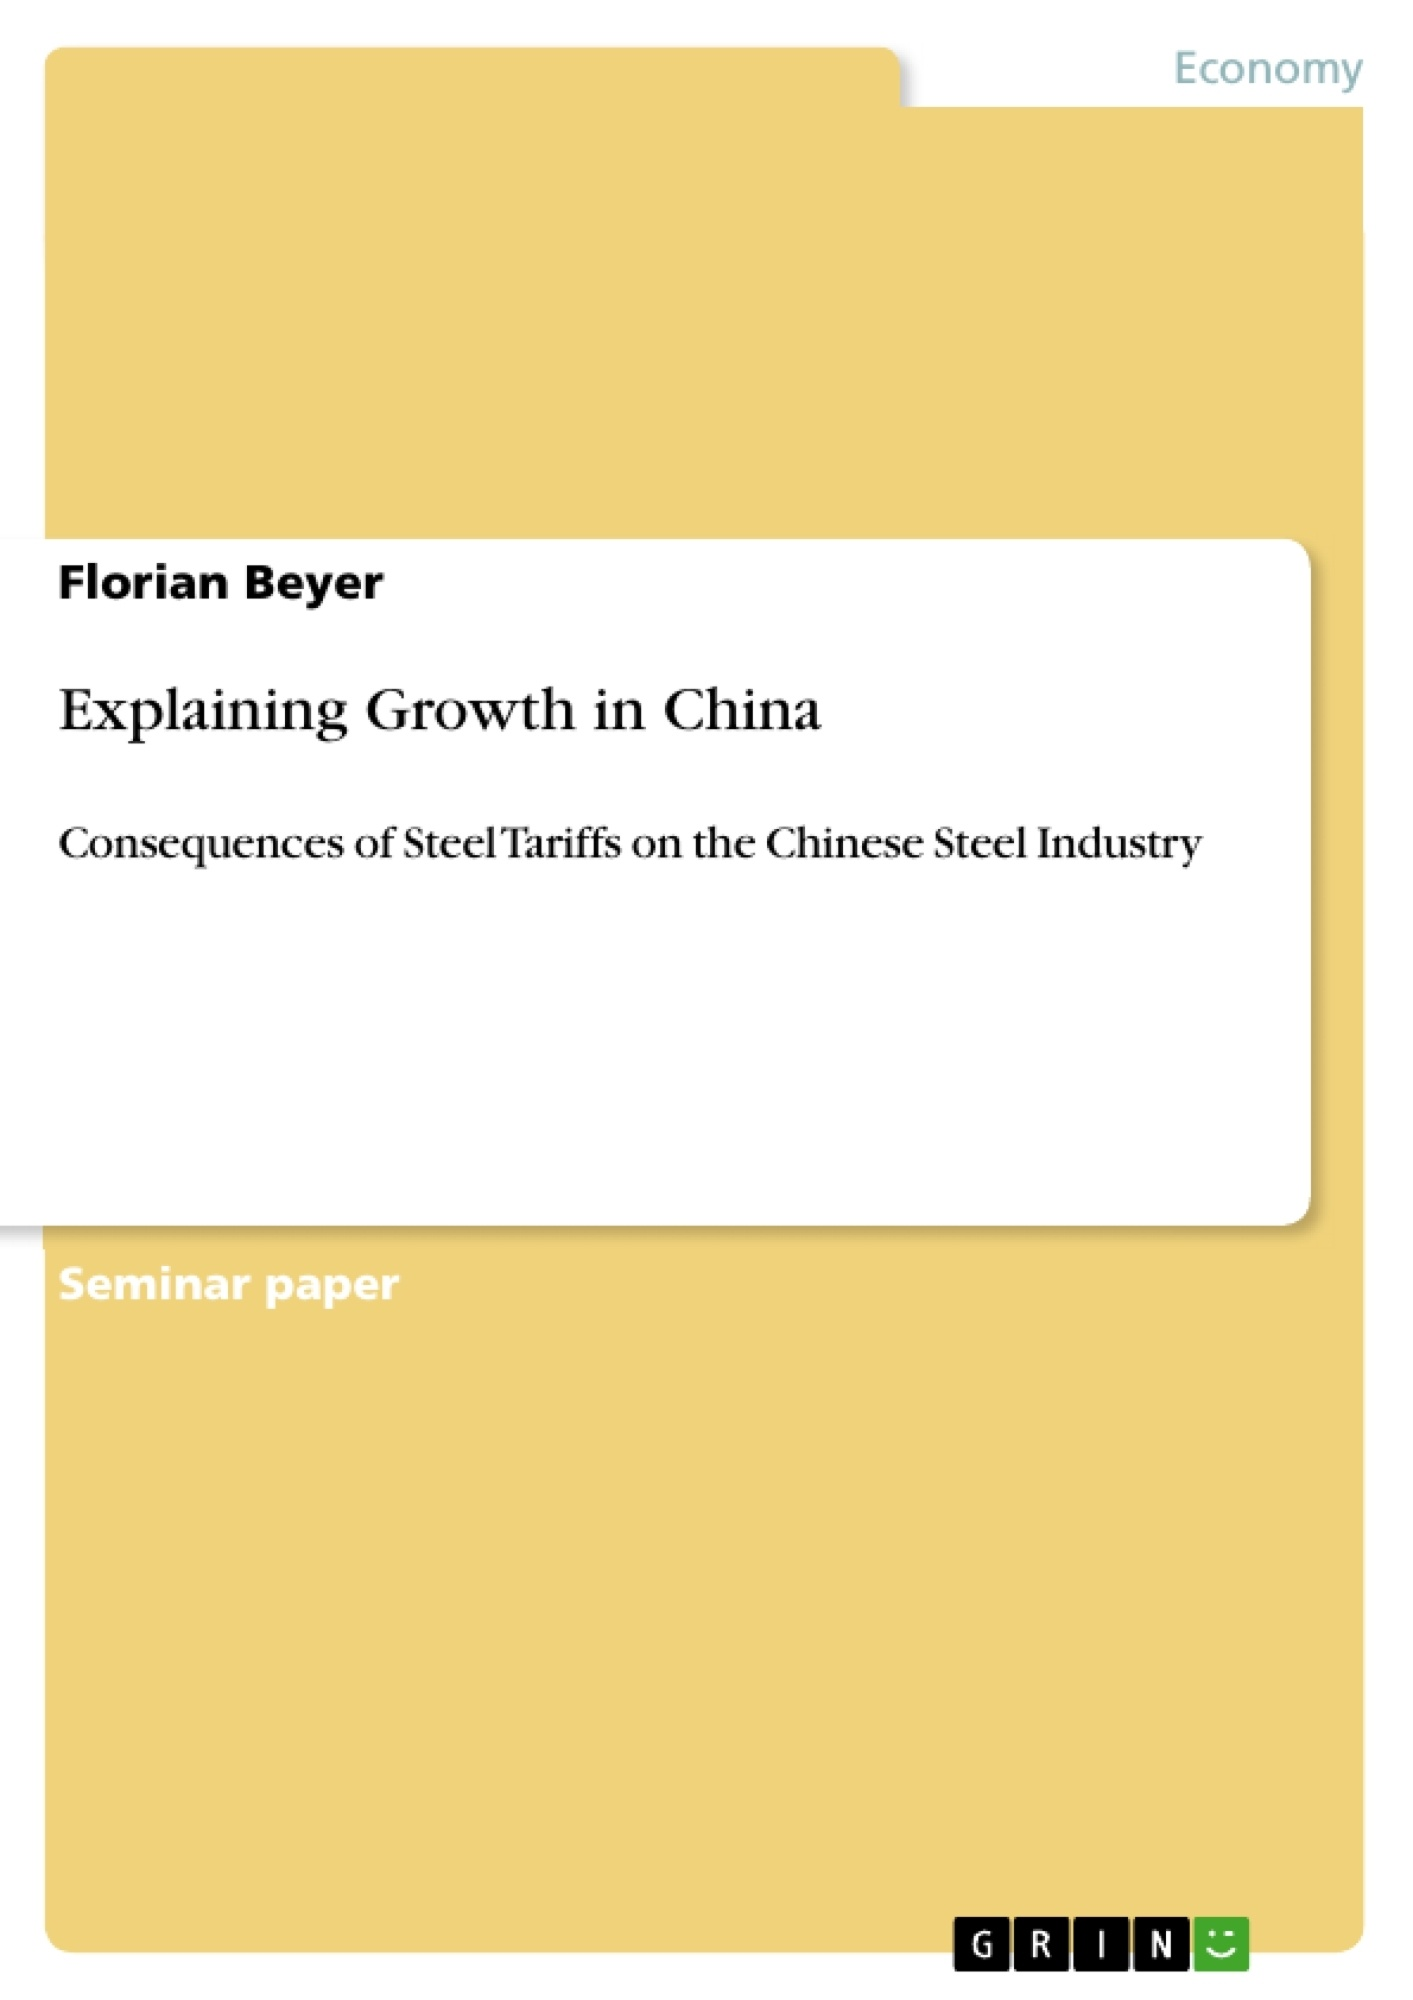 Title: Explaining Growth in China